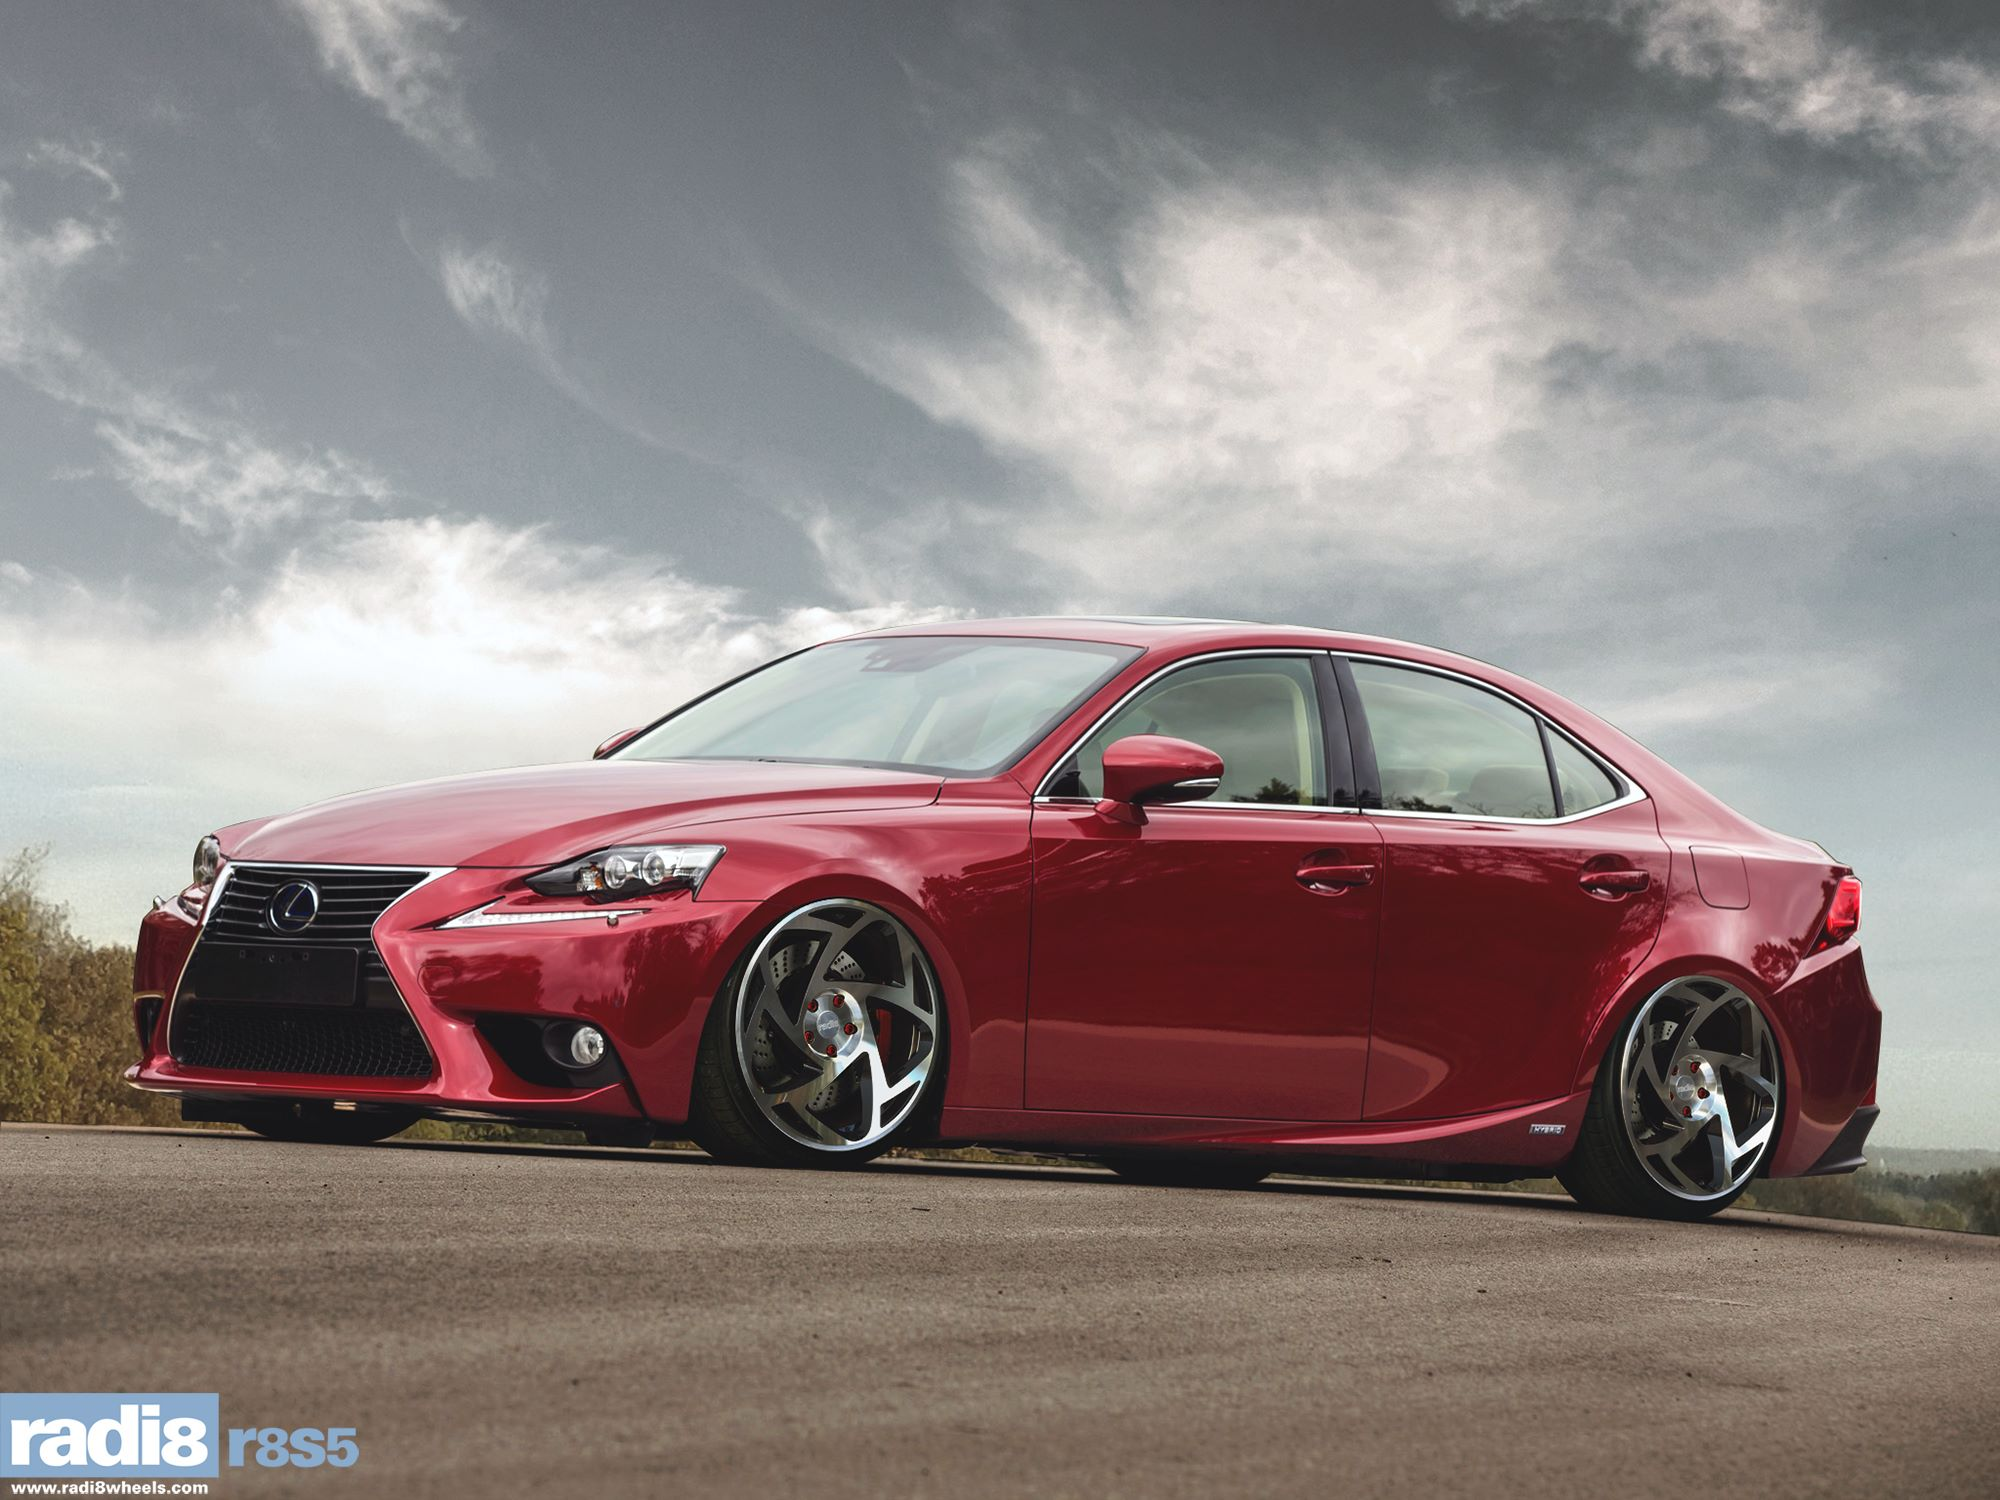 Radi8 R8S5 - Lexus IS 300h